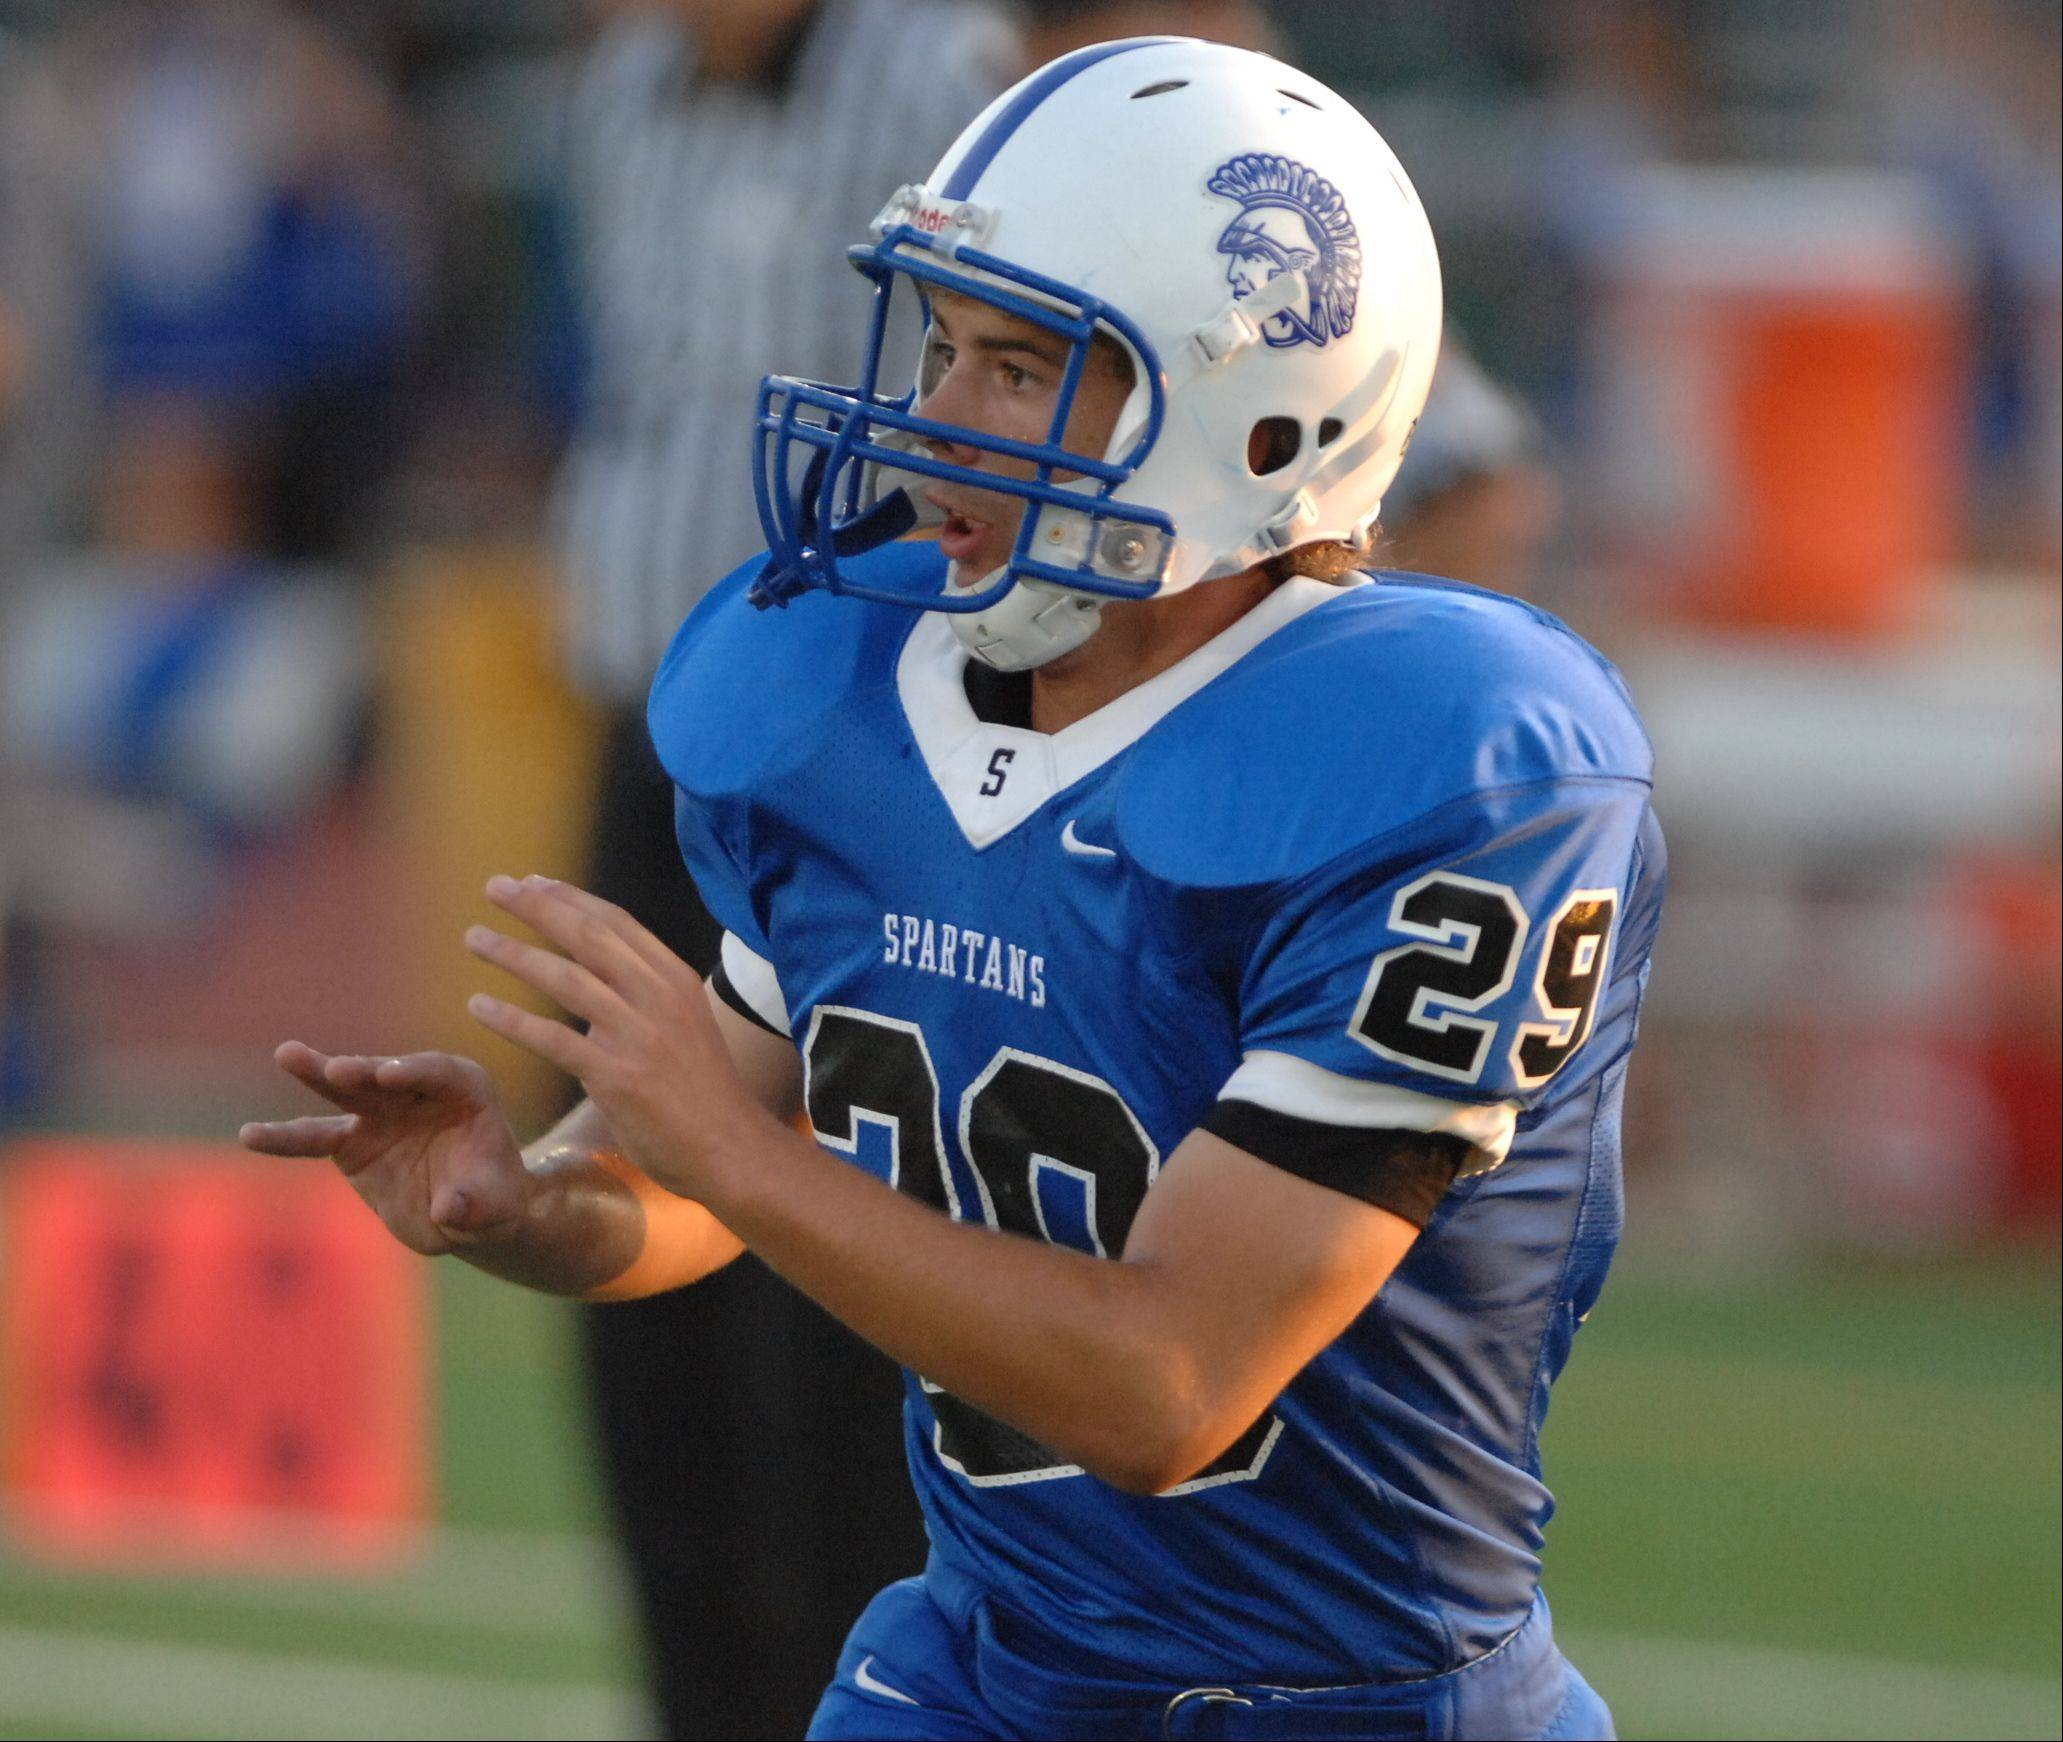 Week 1 - Photos from the Riverside-Brookfield vs. St. Francis football on August 26th.